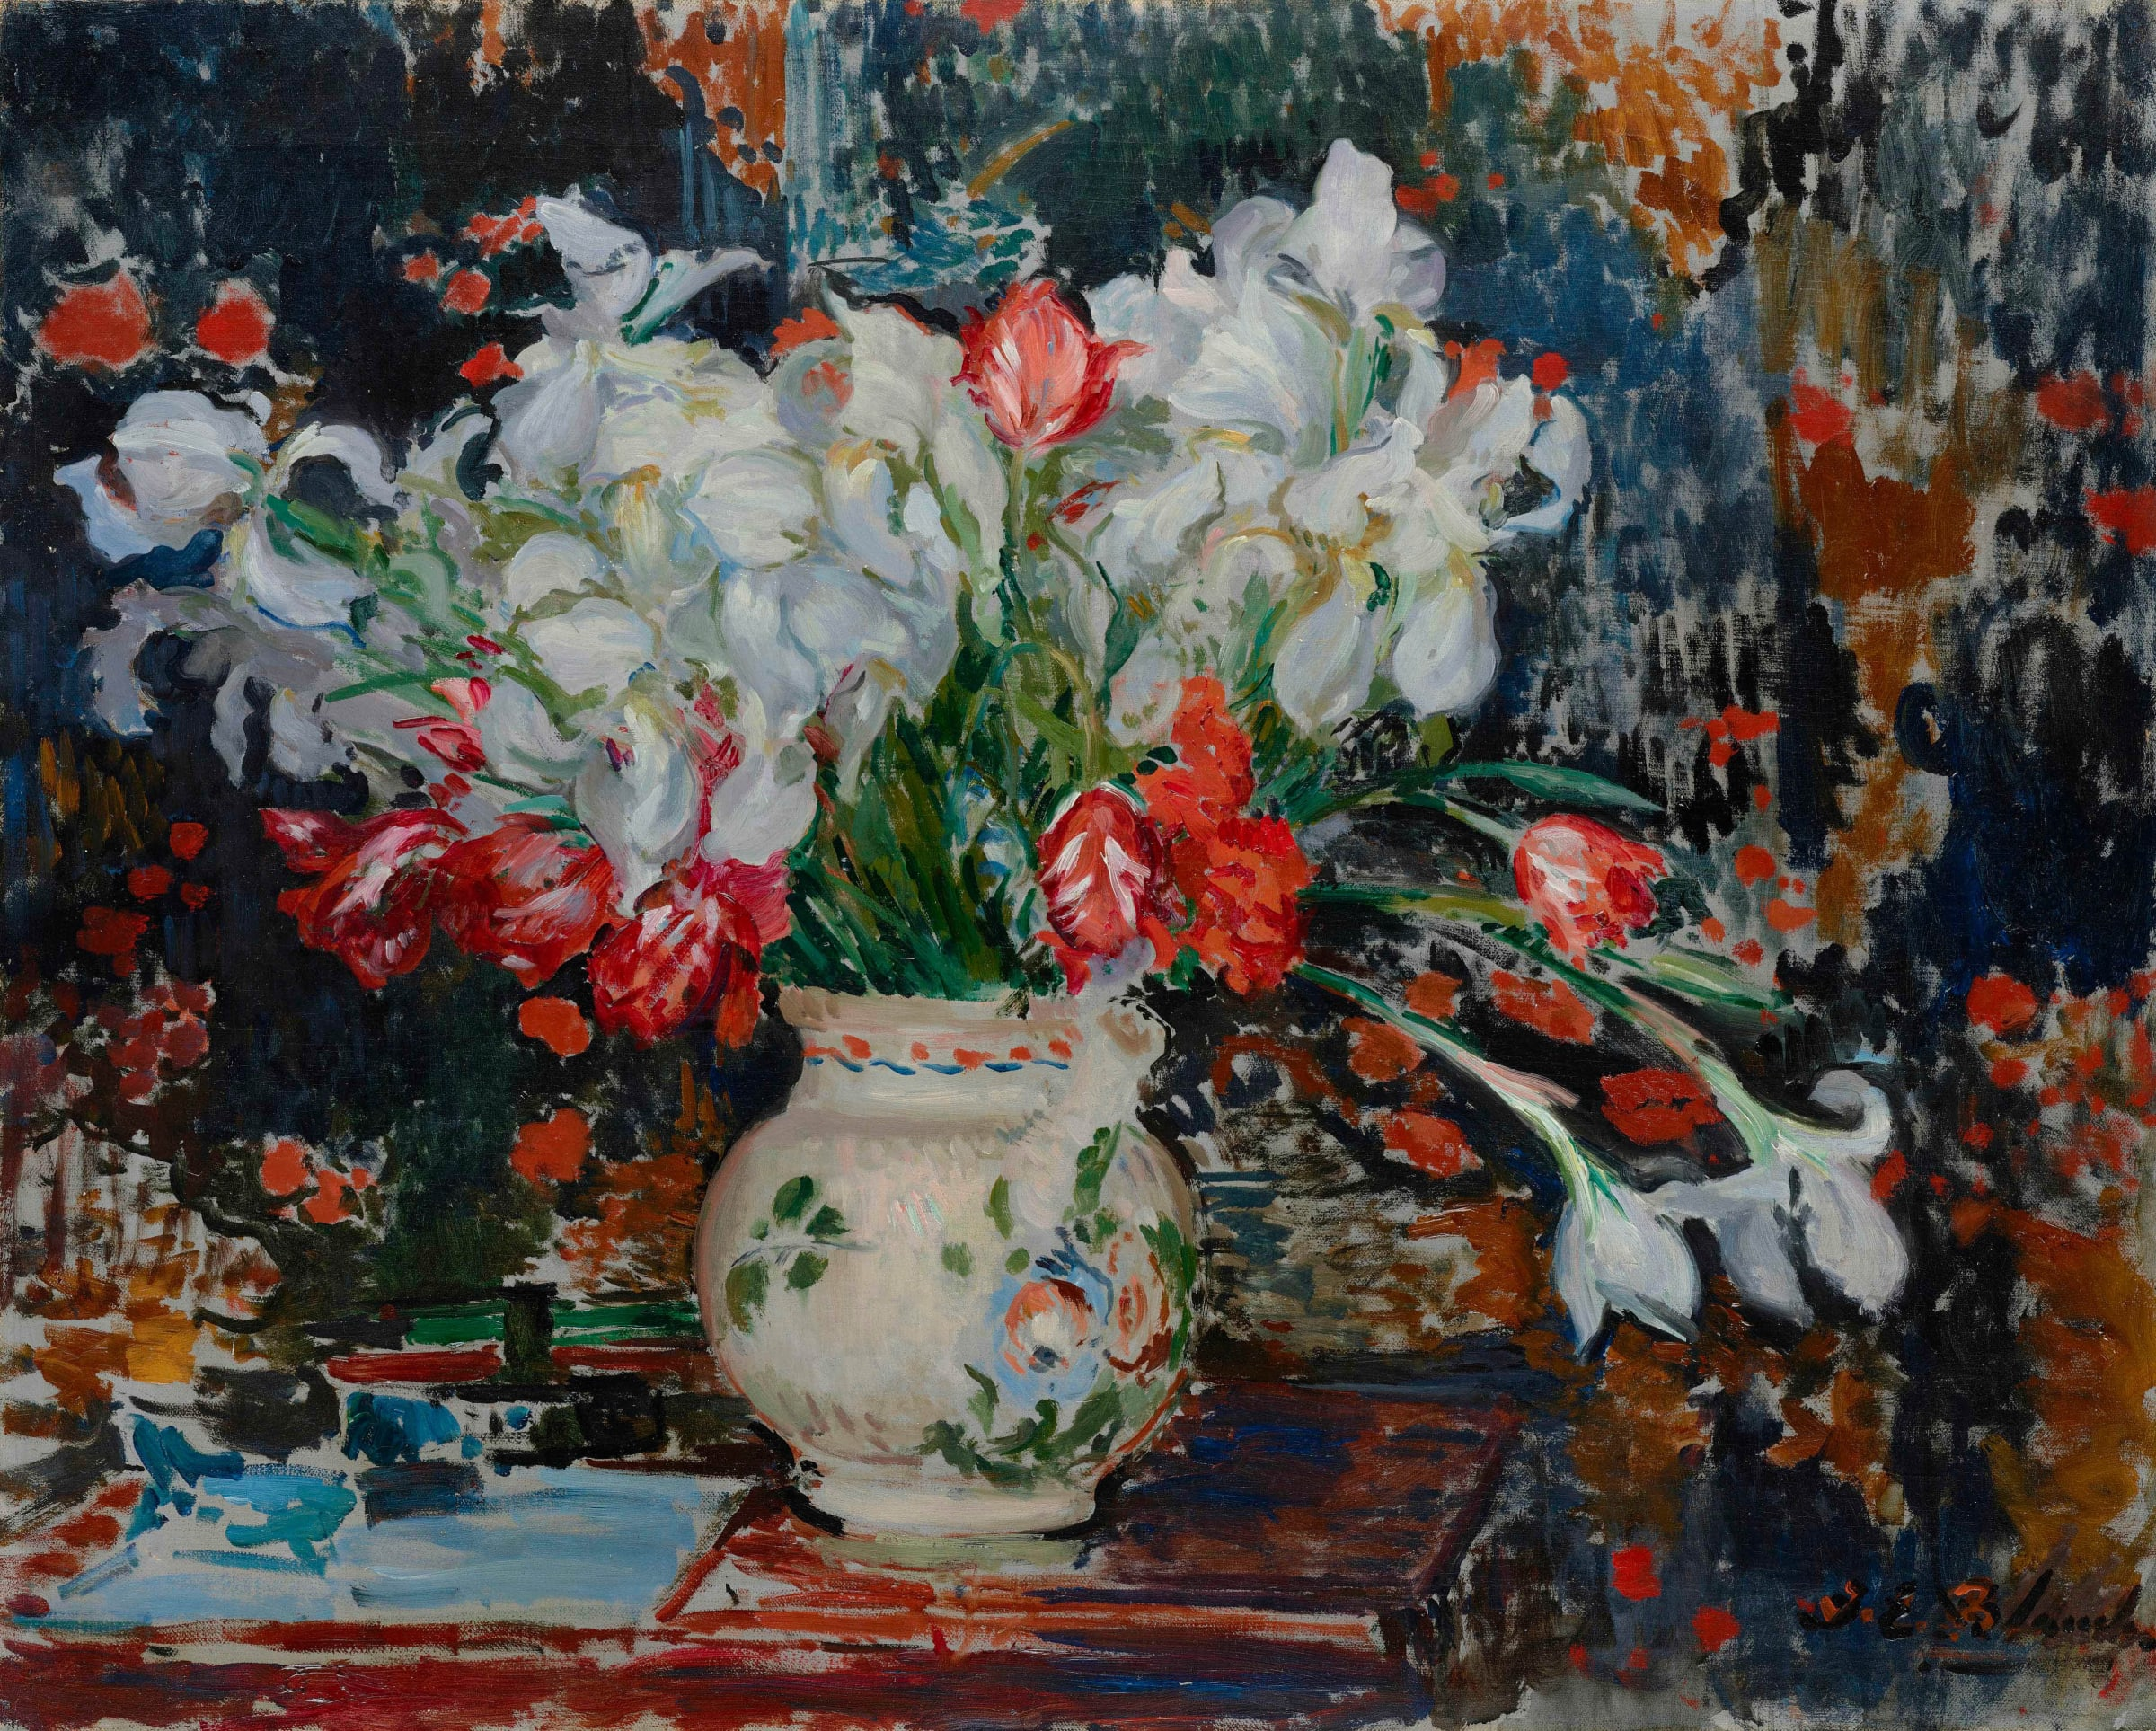 "<span class=""link fancybox-details-link""><a href=""/artists/27-jacques-emile-blanche/works/9375-jacques-emile-blanche-bouquet-d-iris-blanches-et-de-tulipes-rouges-c.1911/"">View Detail Page</a></span><div class=""artist""><span class=""artist""><strong>Jacques-Emile Blanche</strong></span></div>